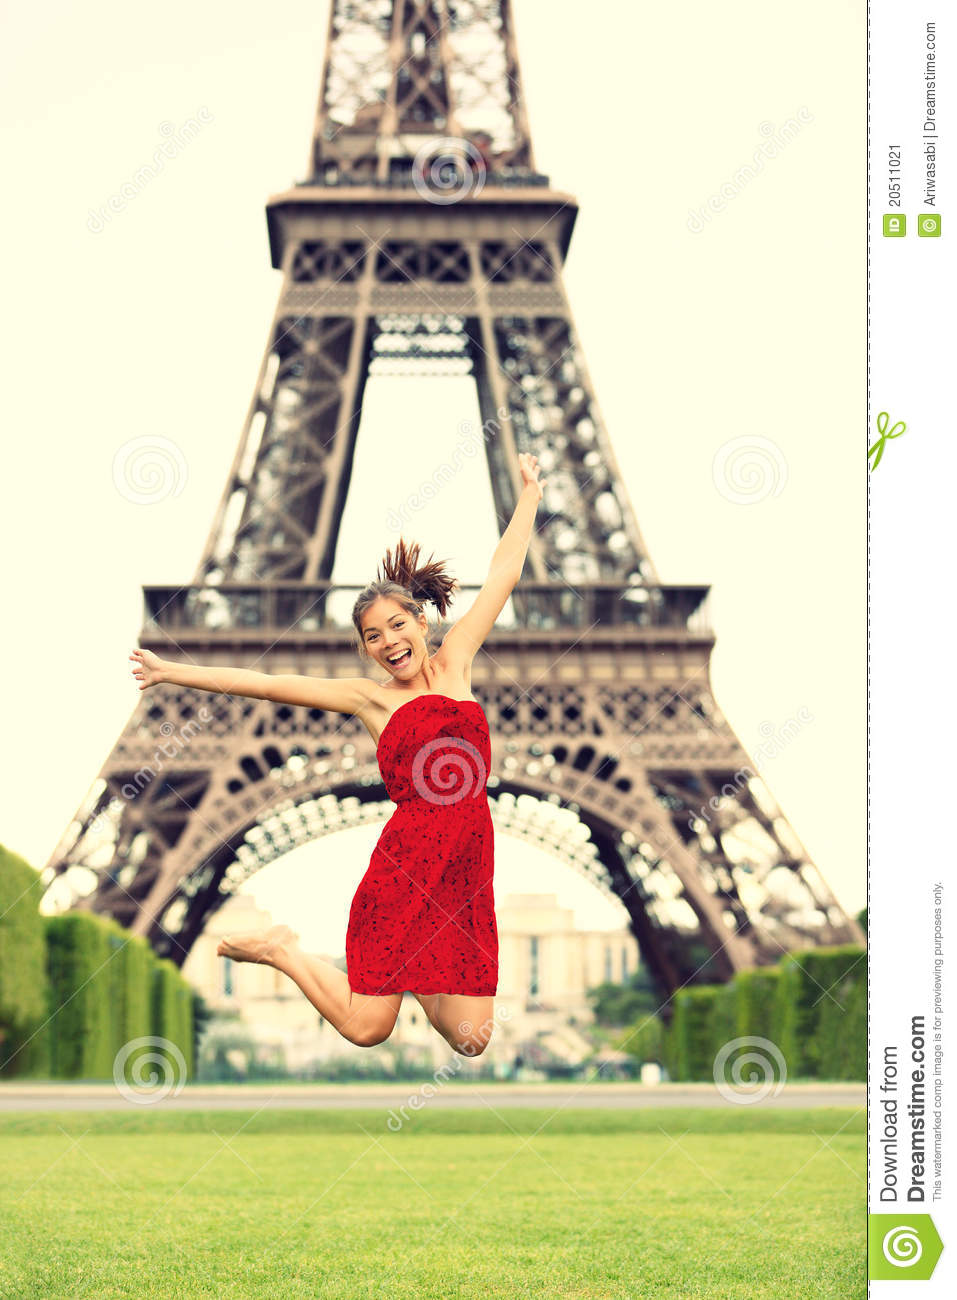 Paris girl at eiffel tower jumping happy smiling excited in red summer